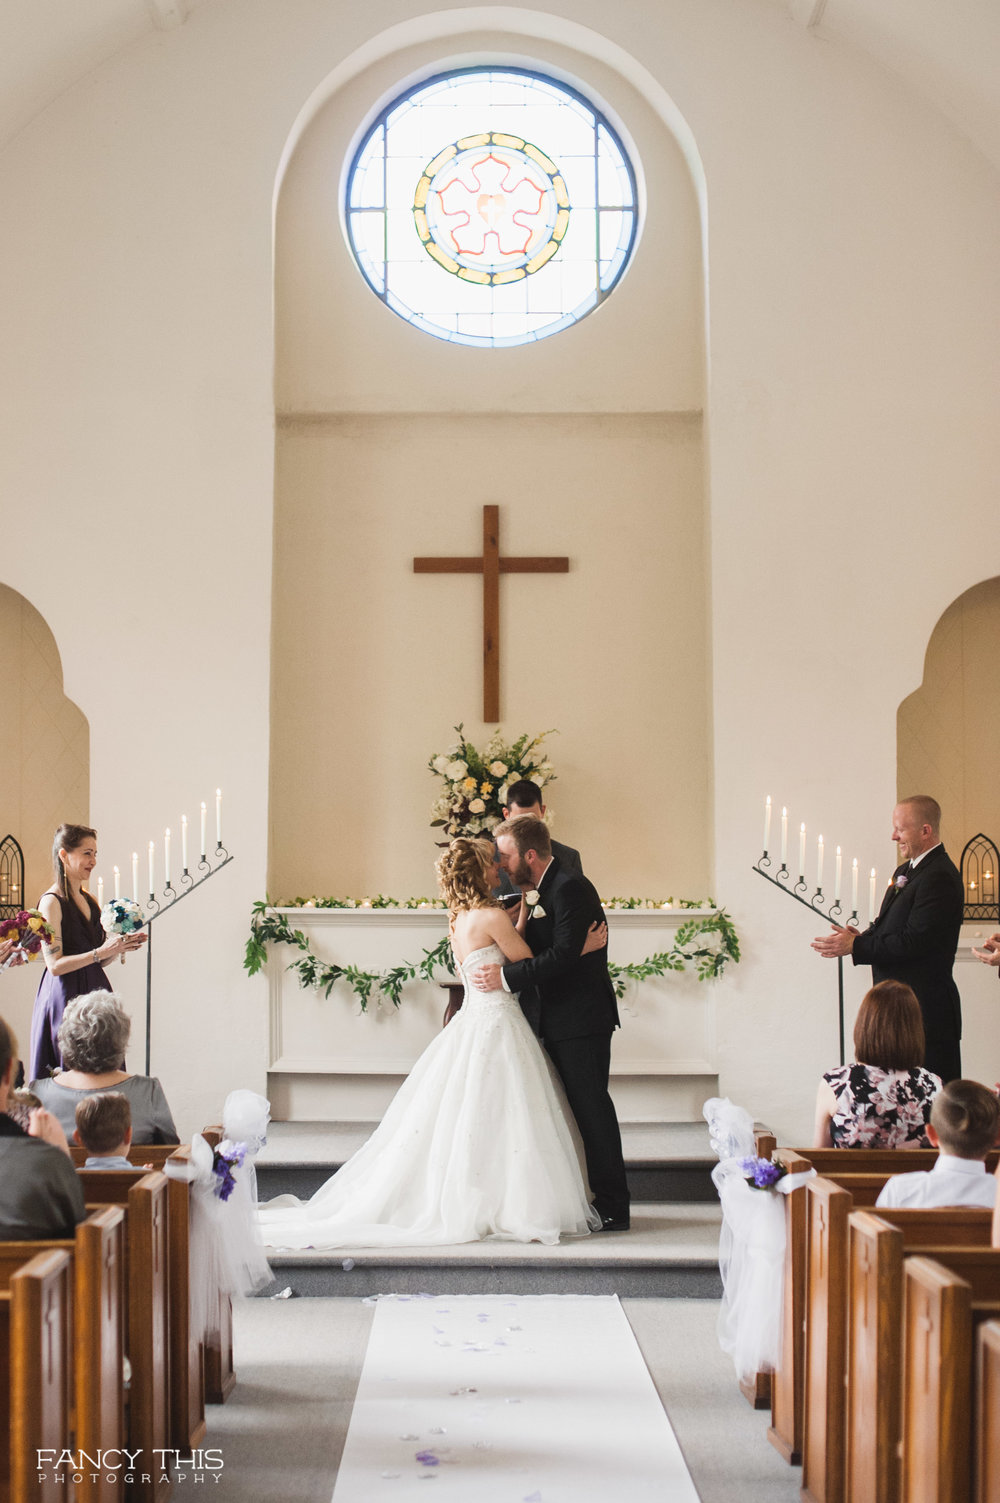 courtneyjasonwedding_socialmediaready117.jpg